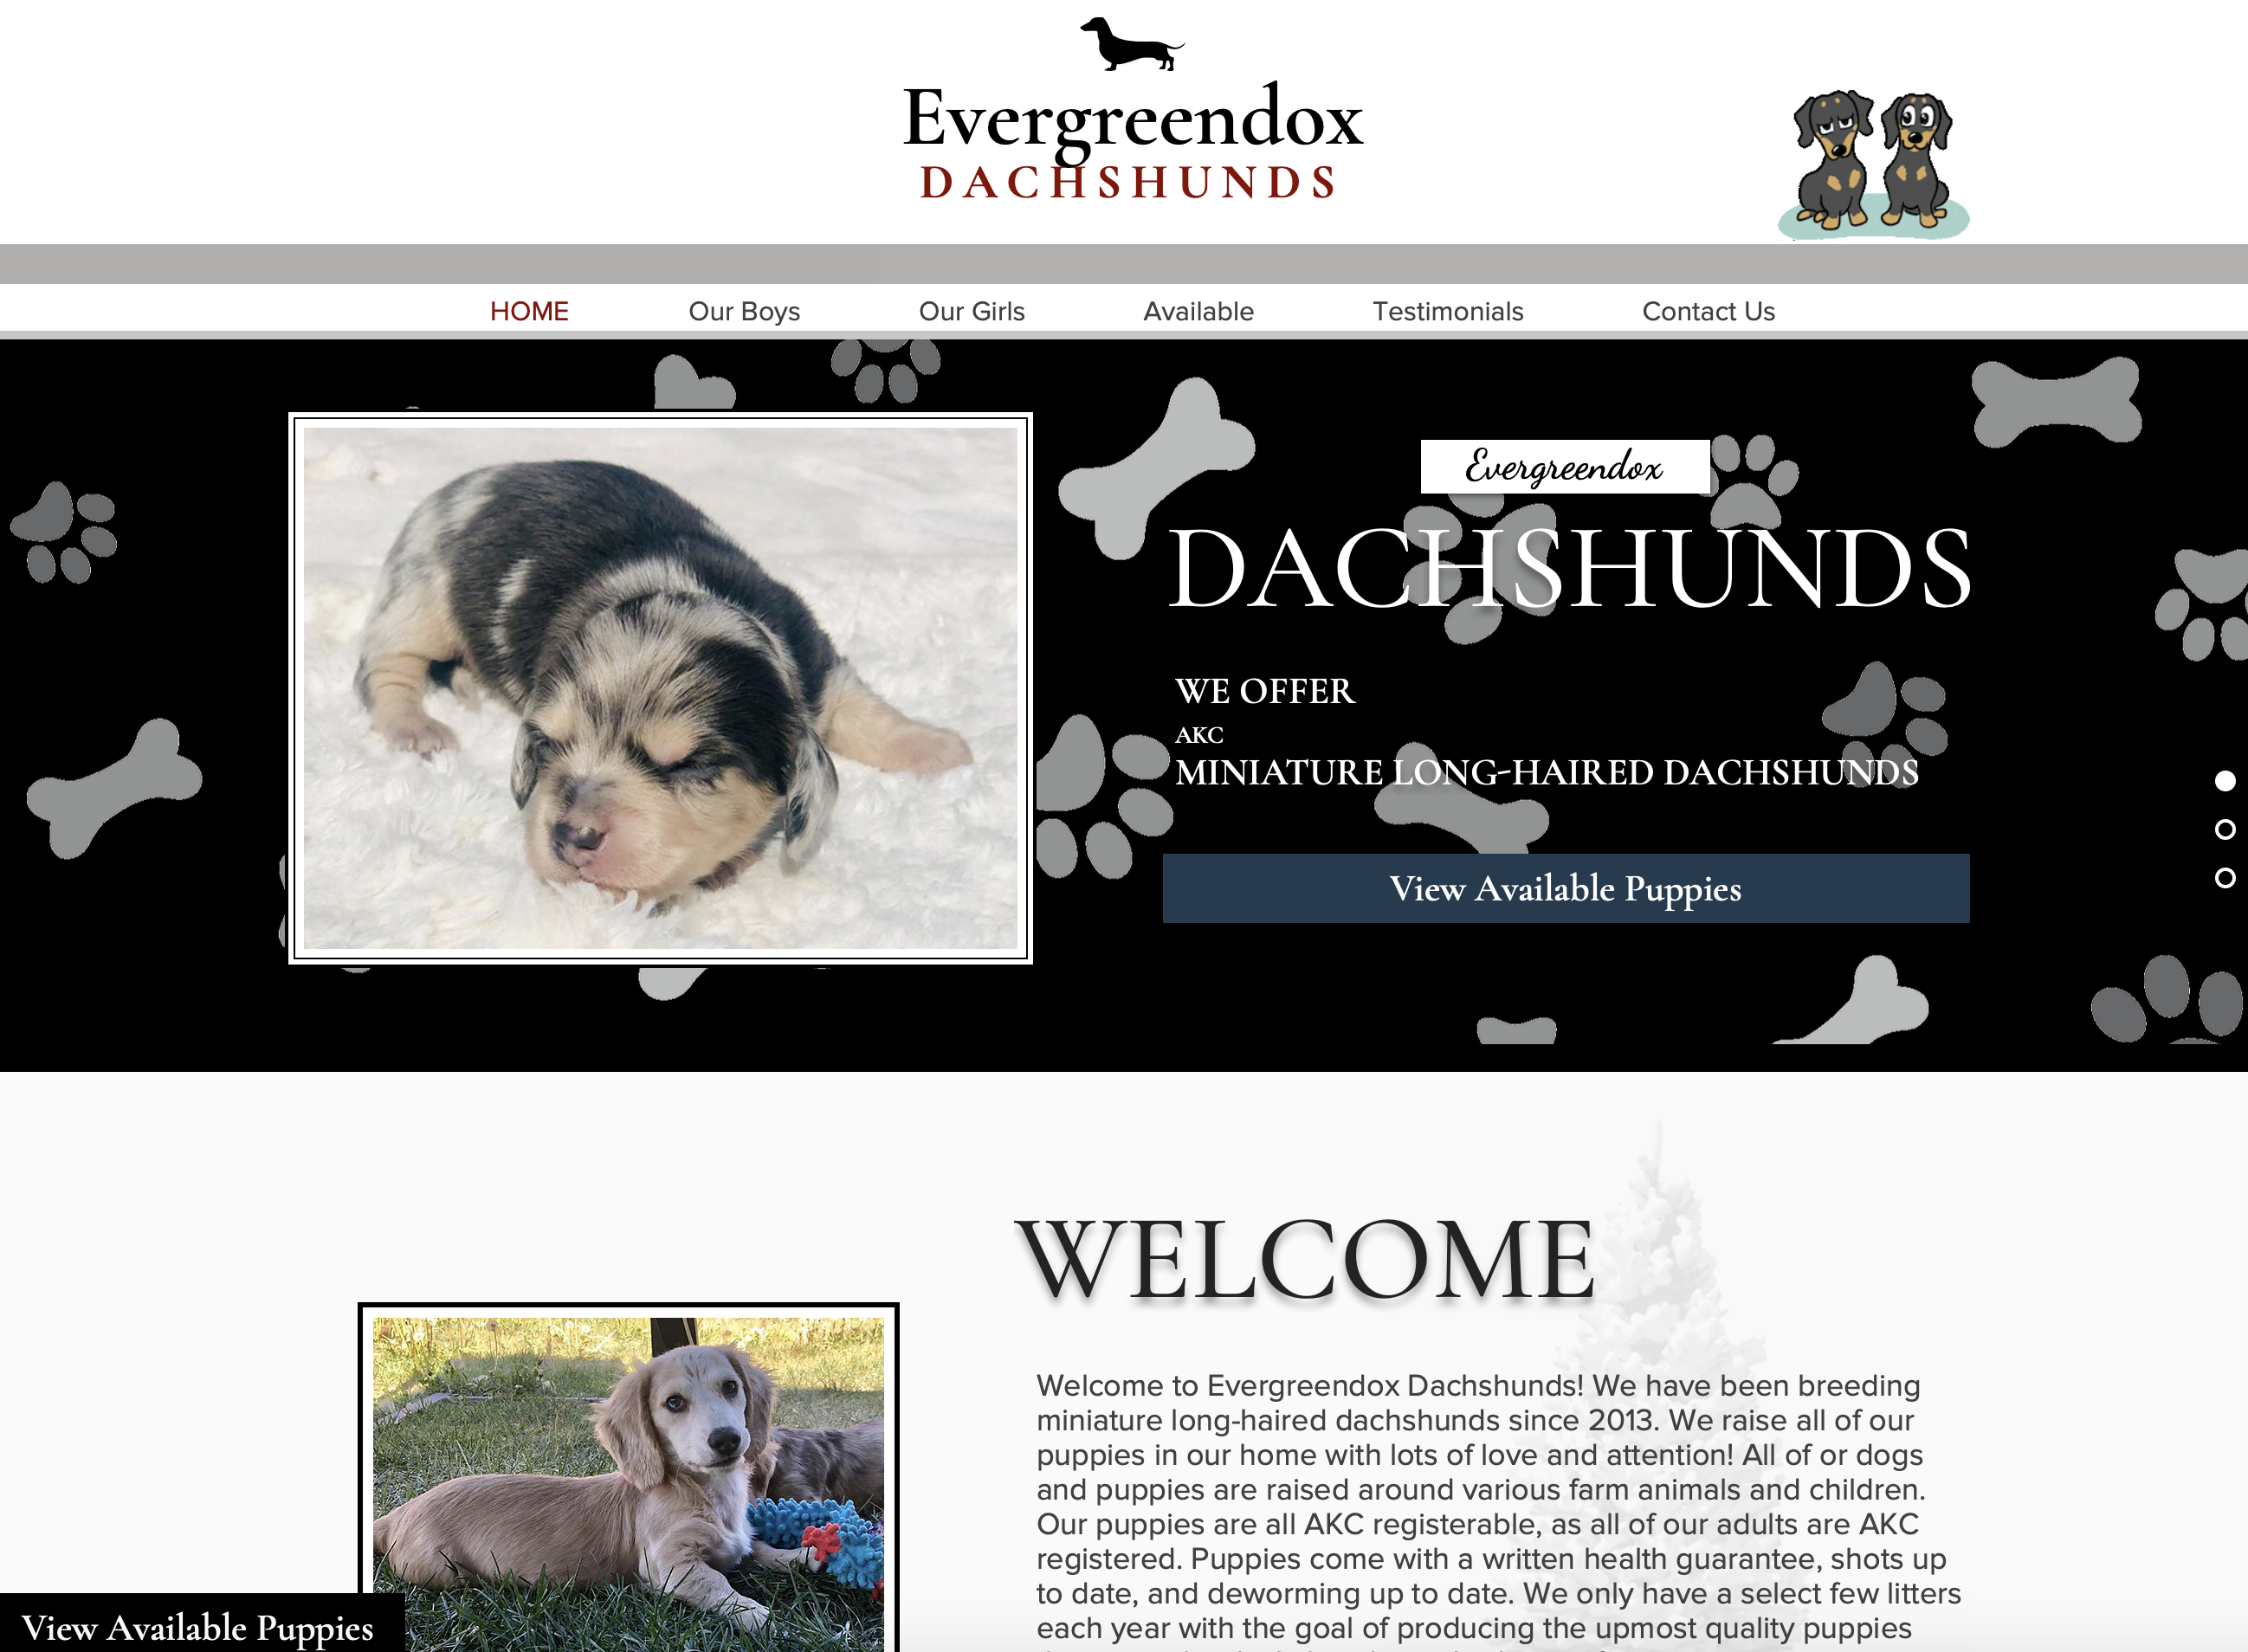 Evergreendox Dachshunds